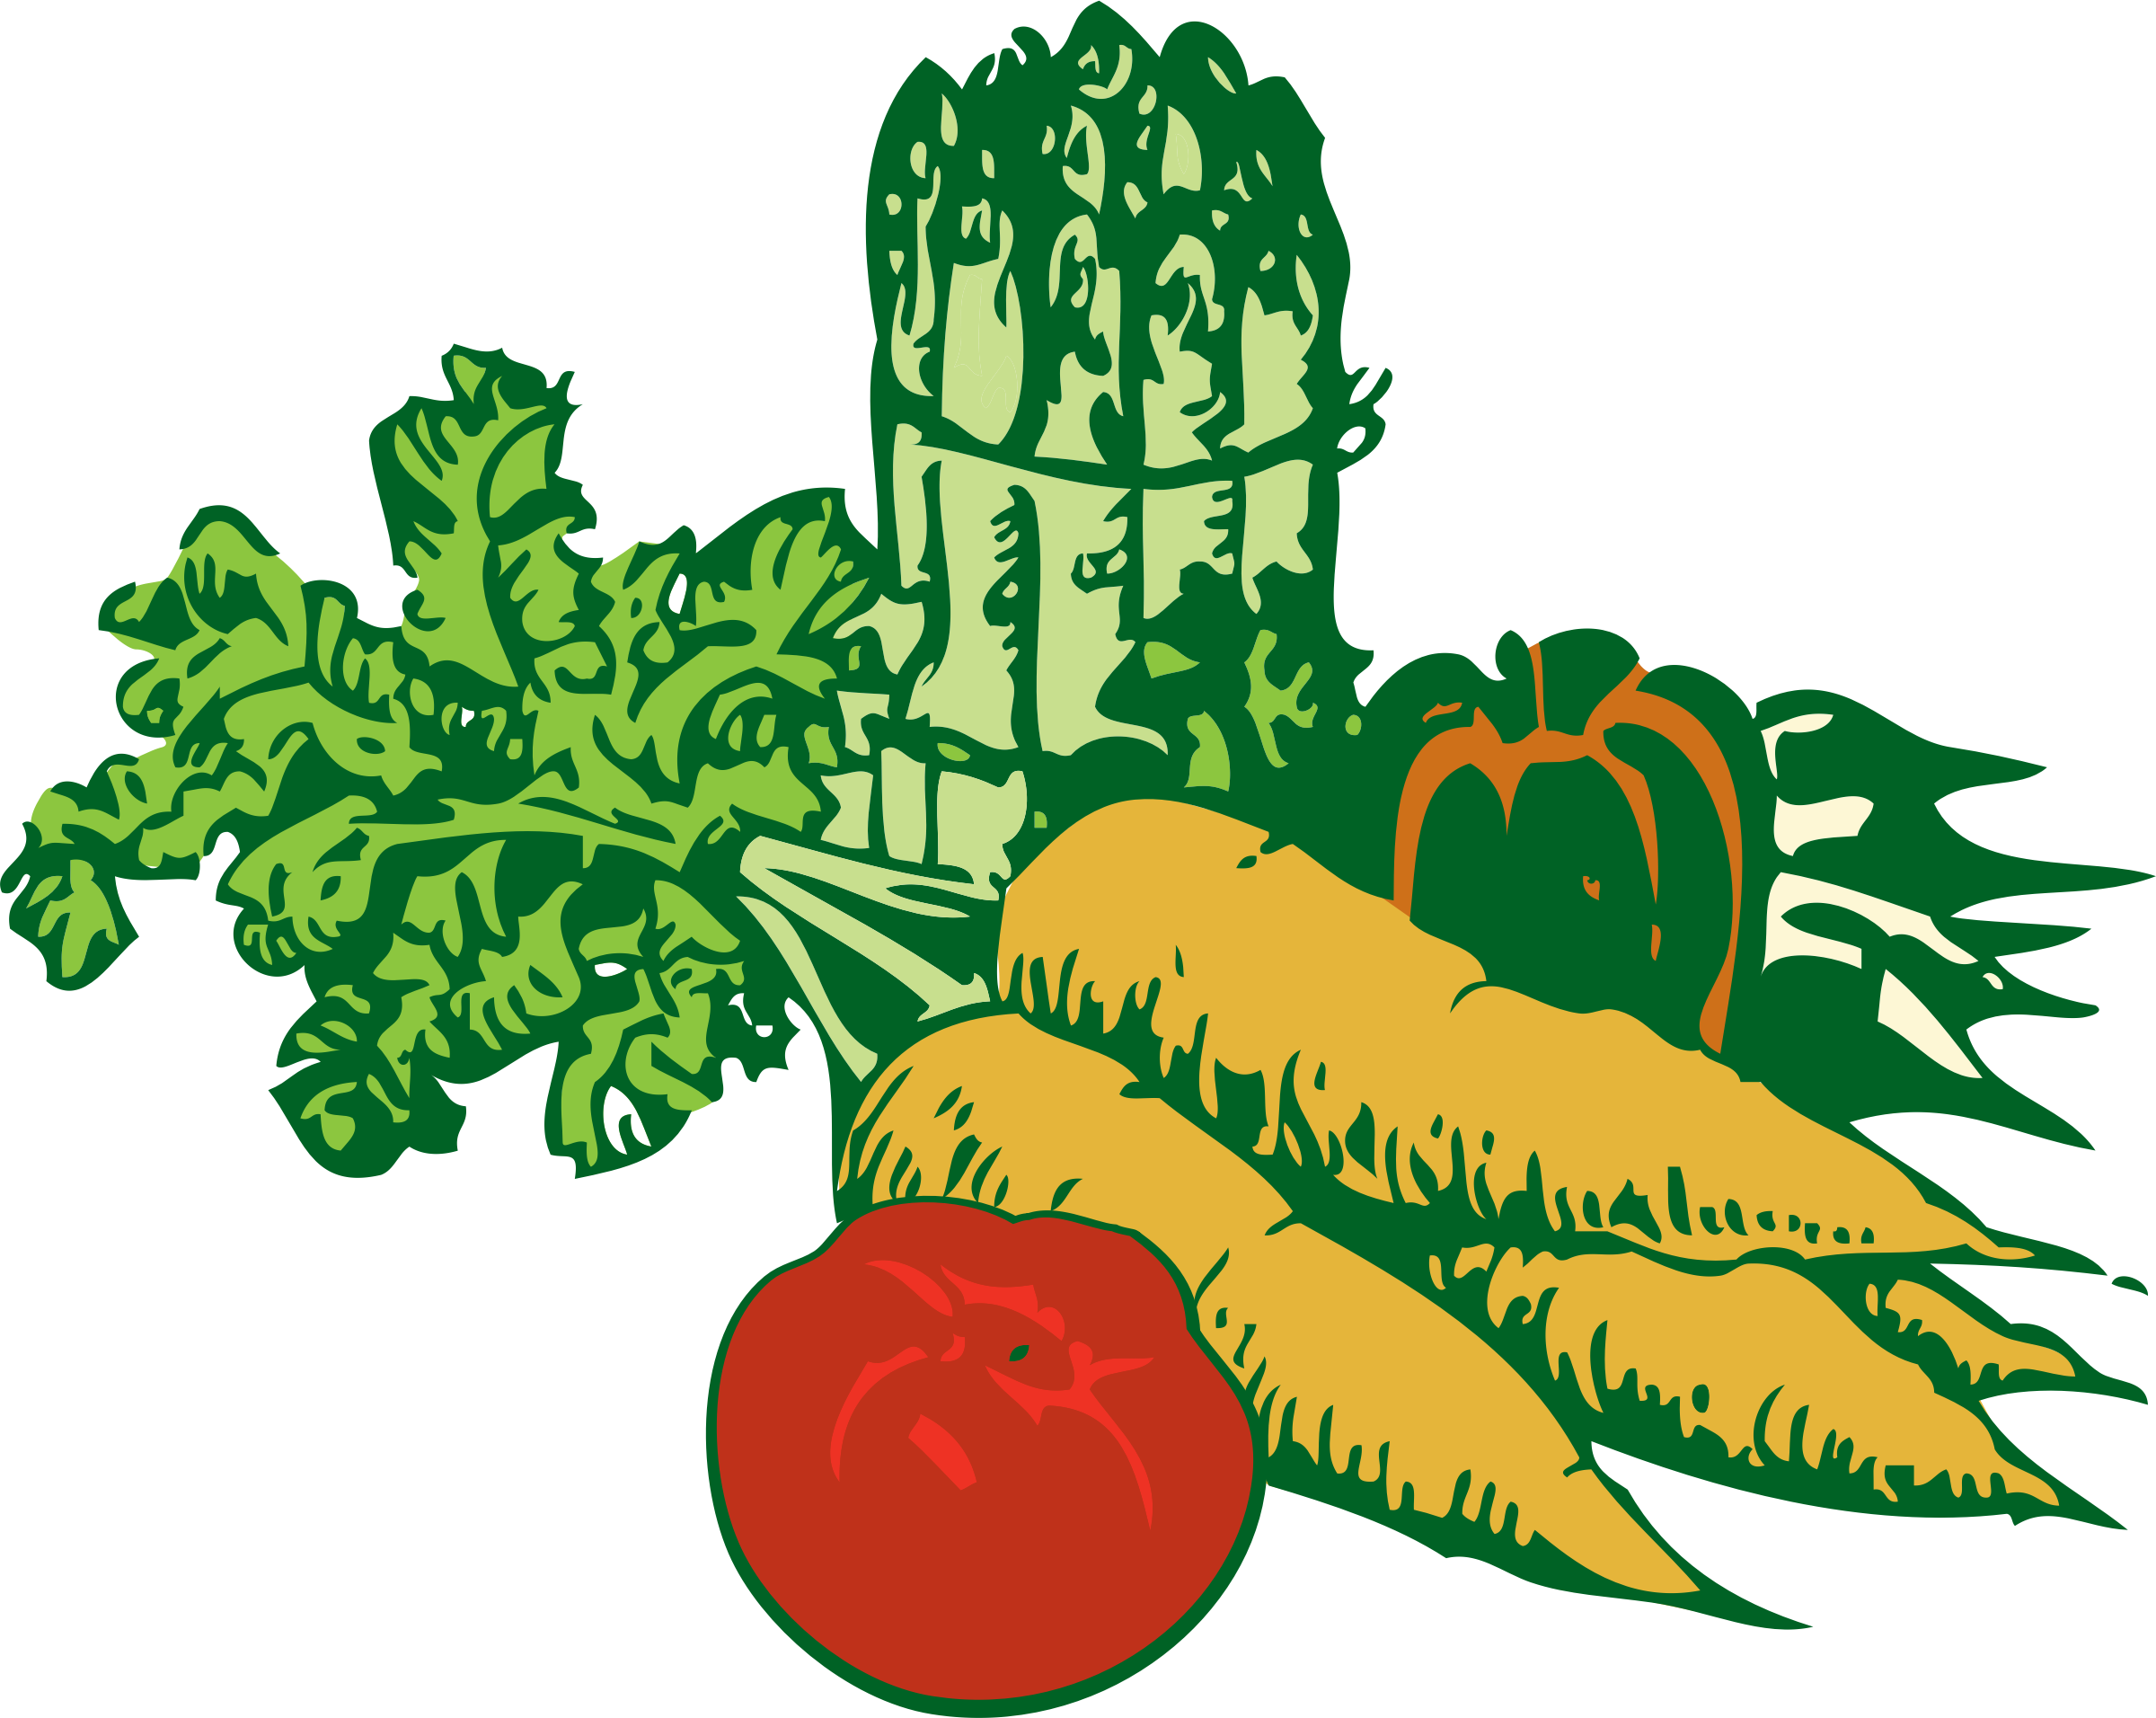 drawing vegetables